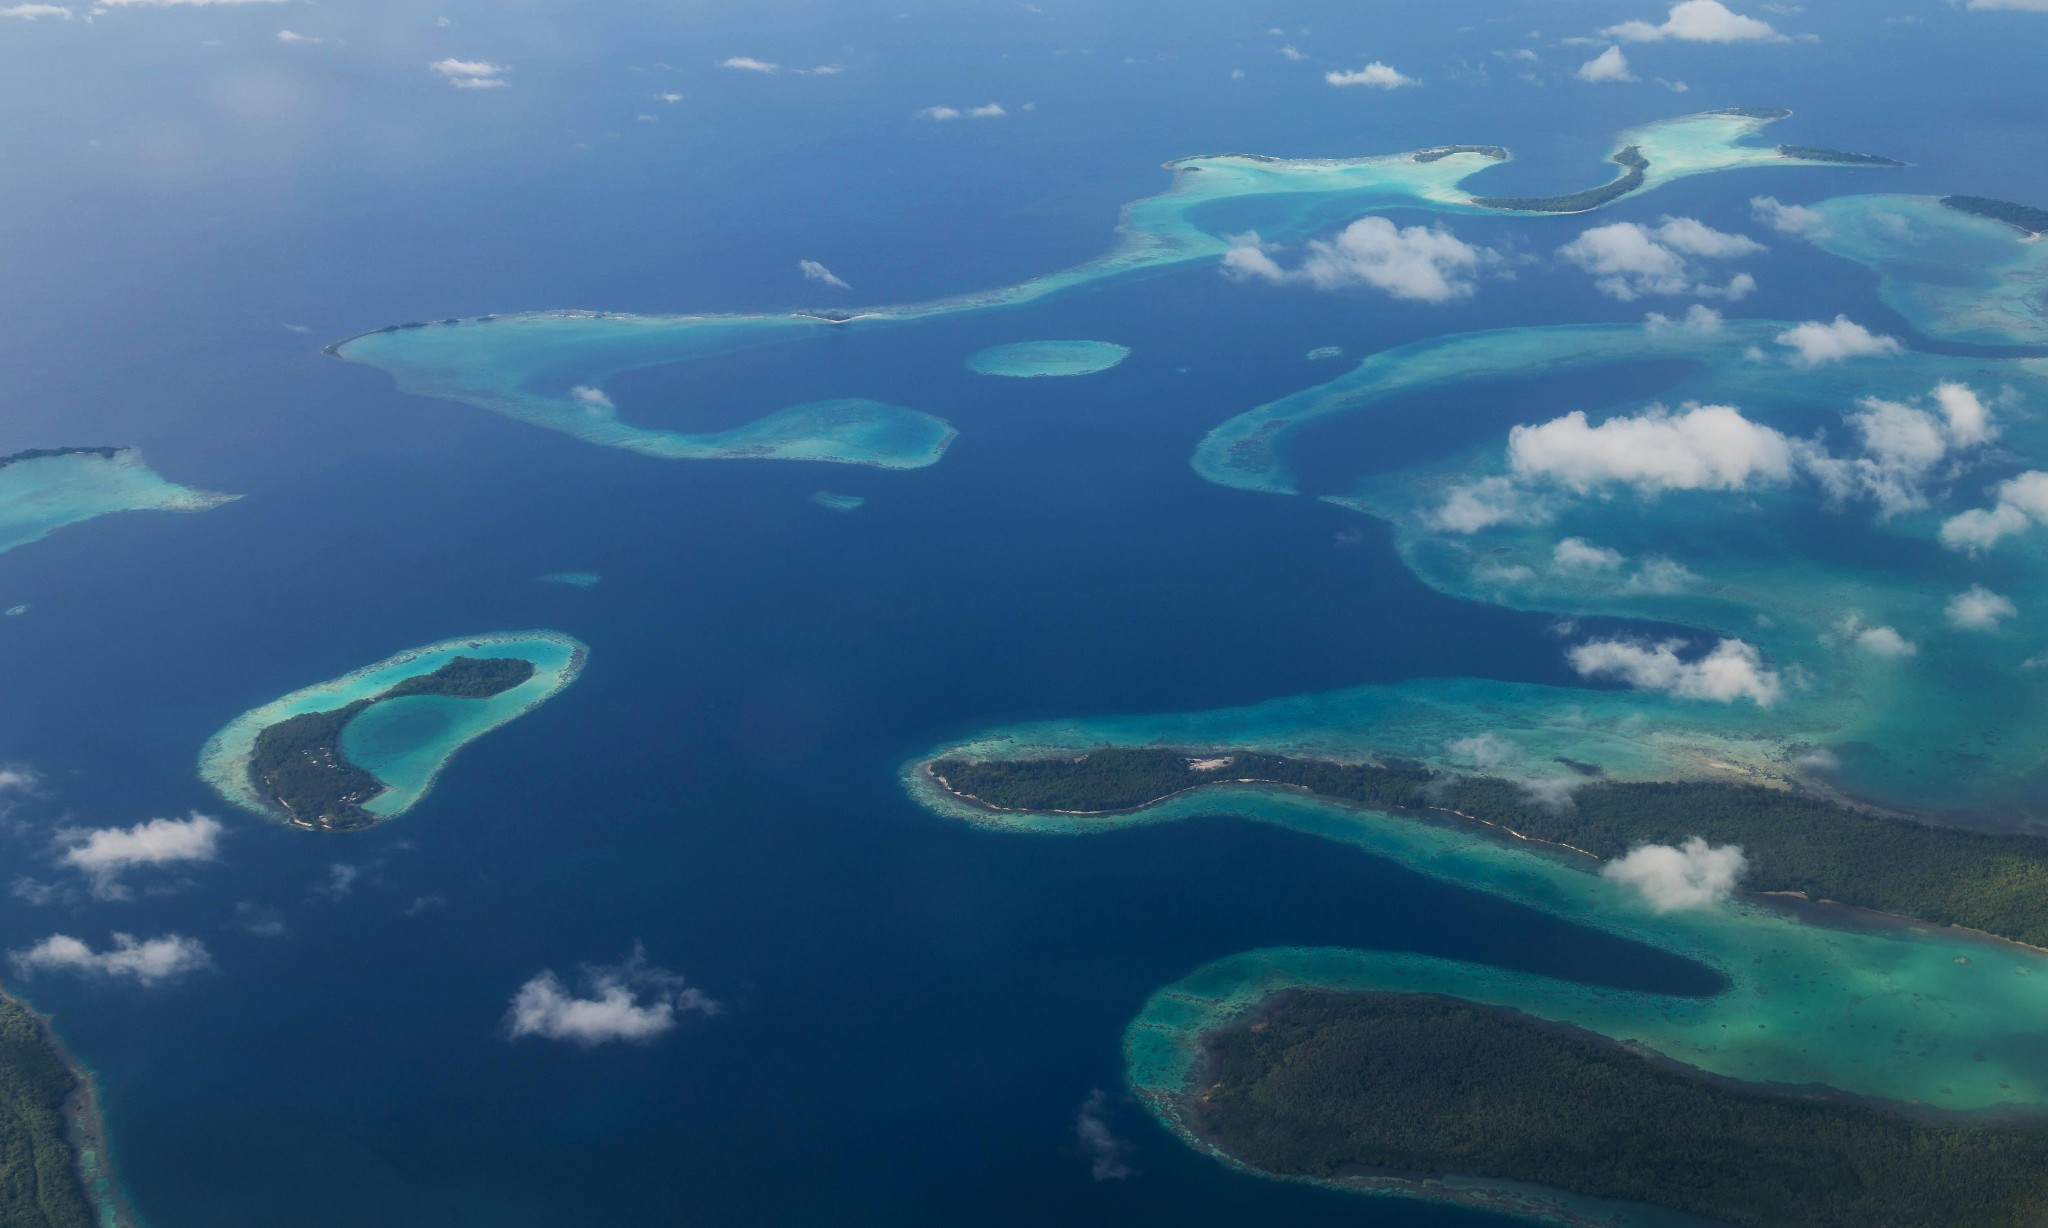 Headlines 'exaggerated' climate link to sinking of Pacific islands